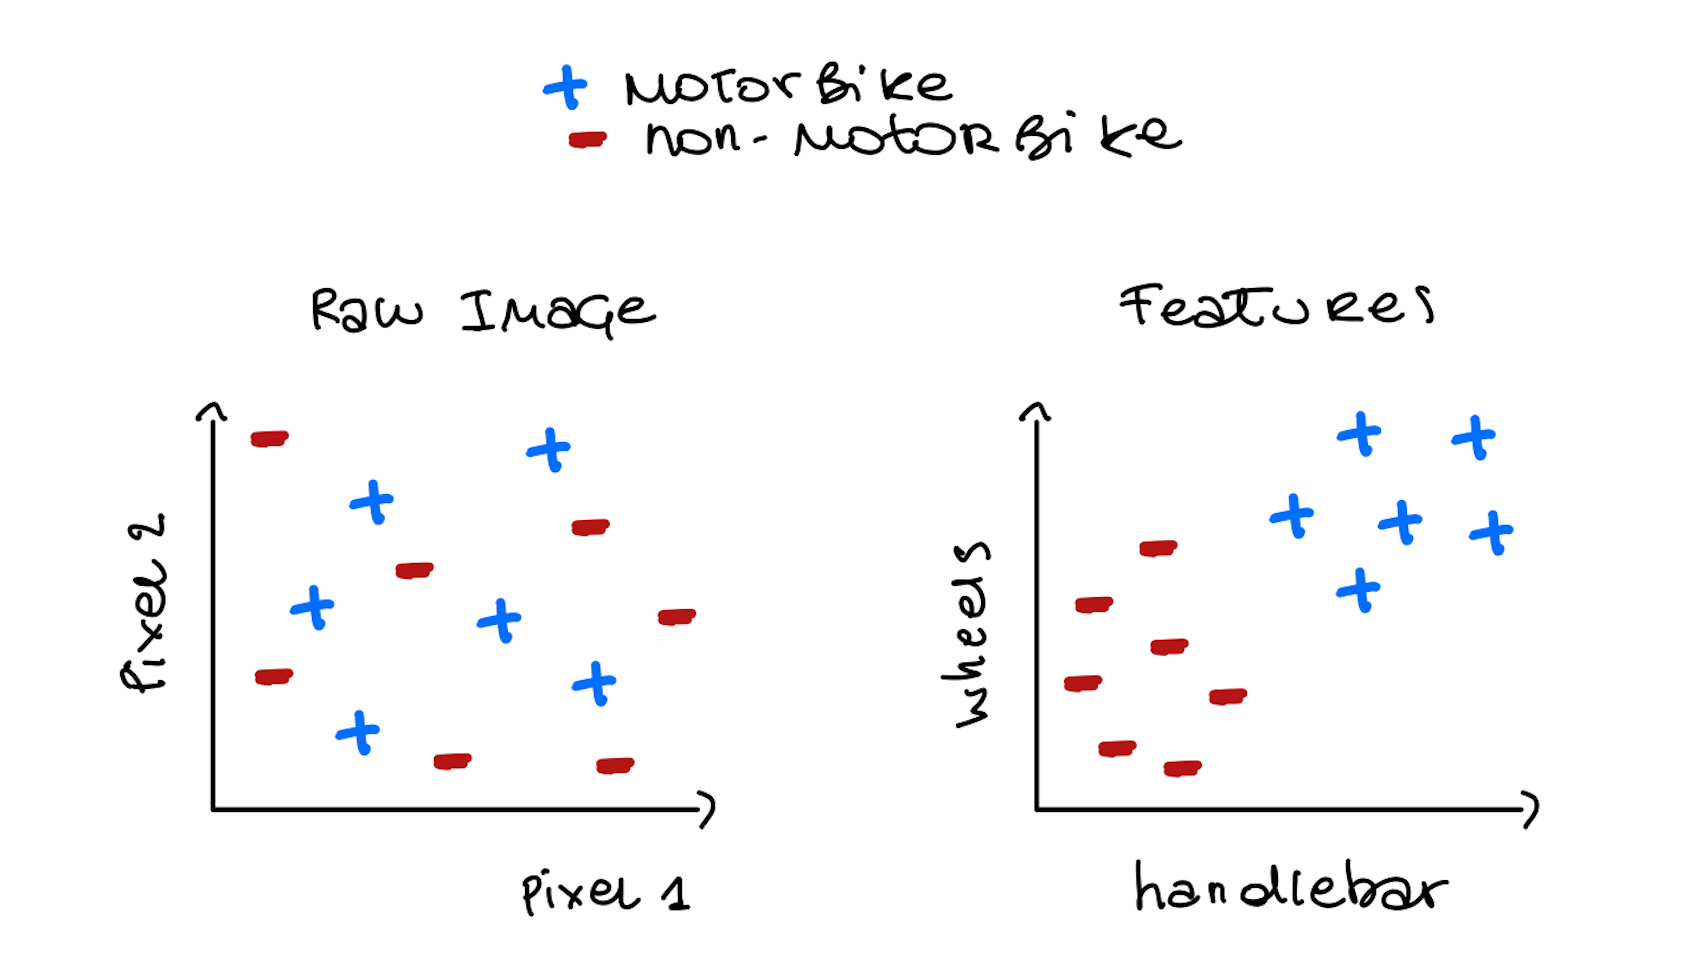 Two hand-drawn graphs comparing the efficacy of classifying images based on pixel values vs. the presence of wheels and handlebars.